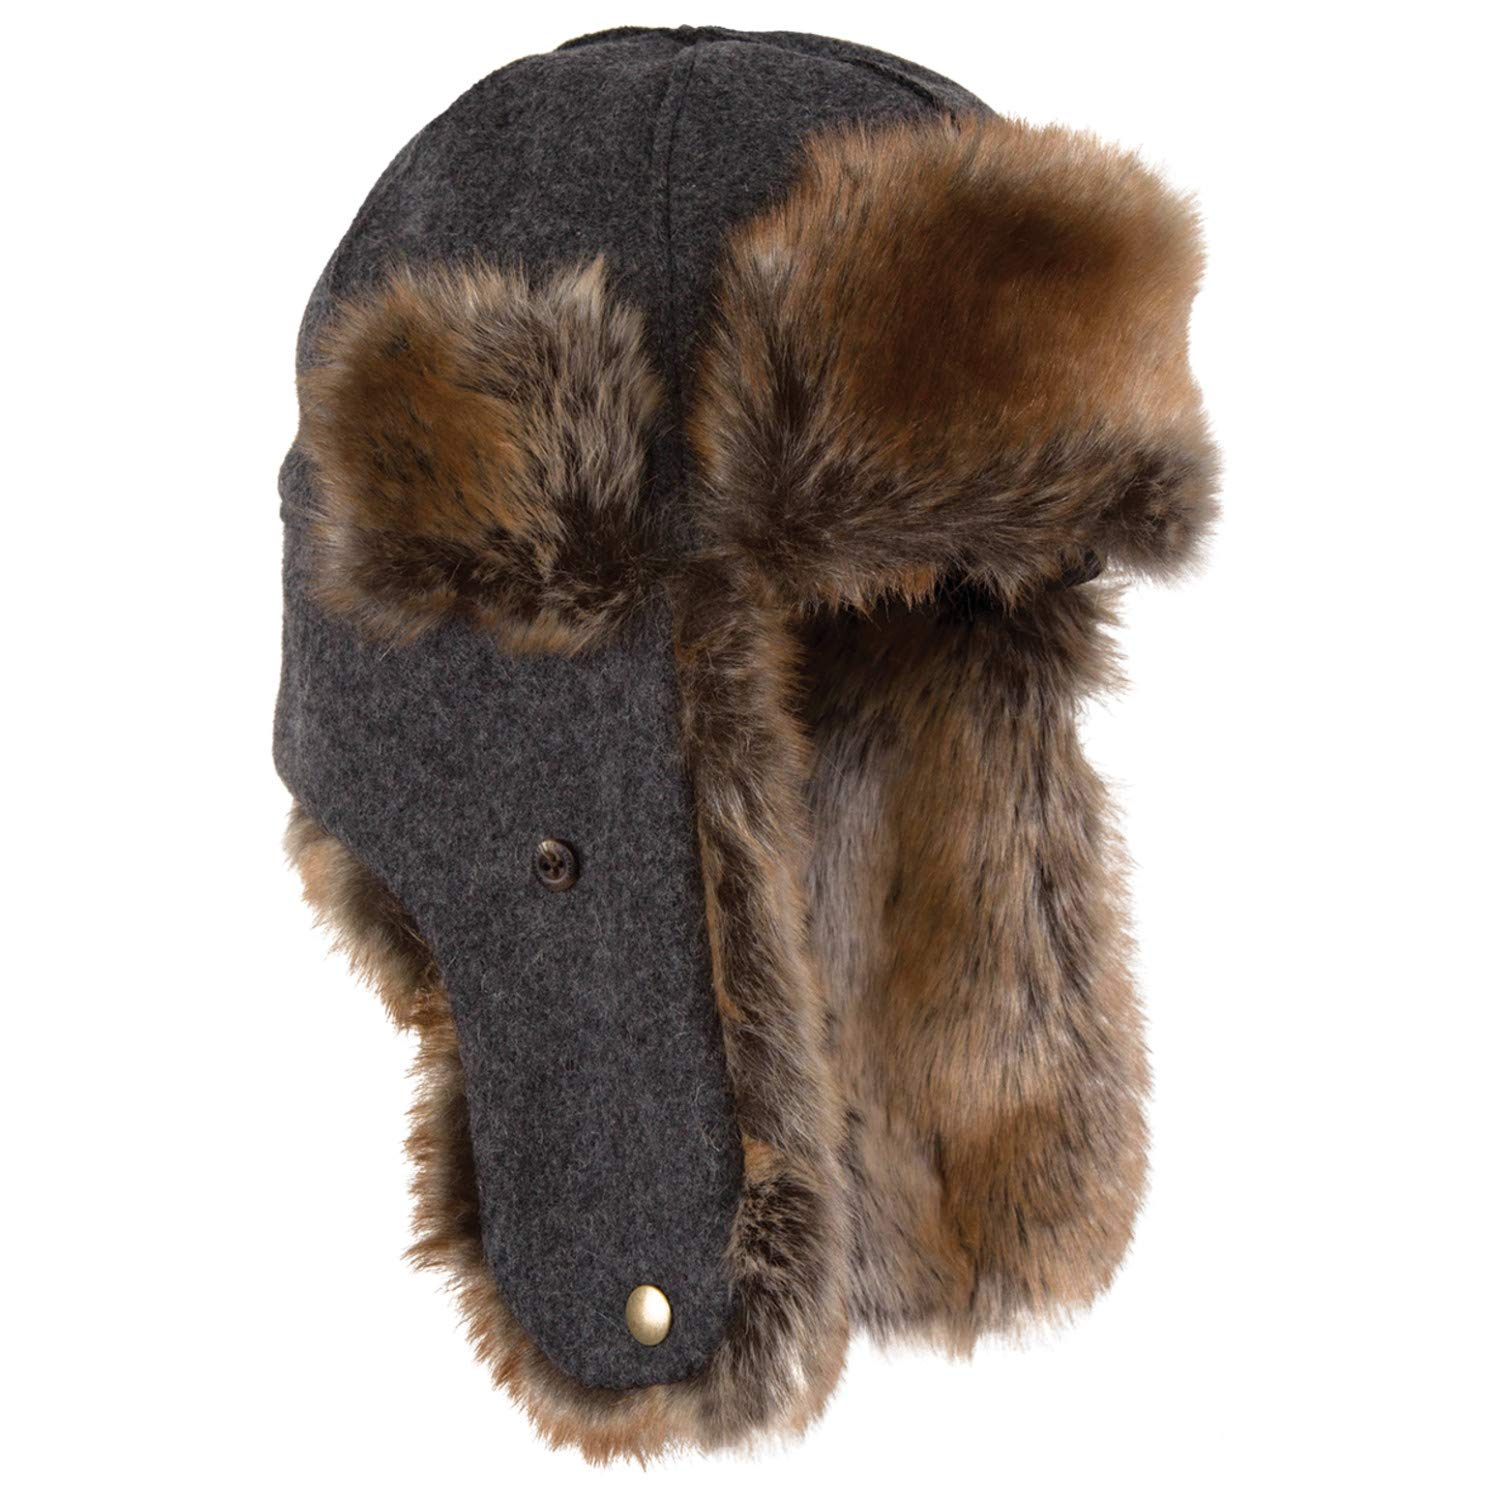 Stormy Kromer The Northwoods Trapper Hat, Color: Charcoal, Size: XL (51210-00007 by Stormy Kromer